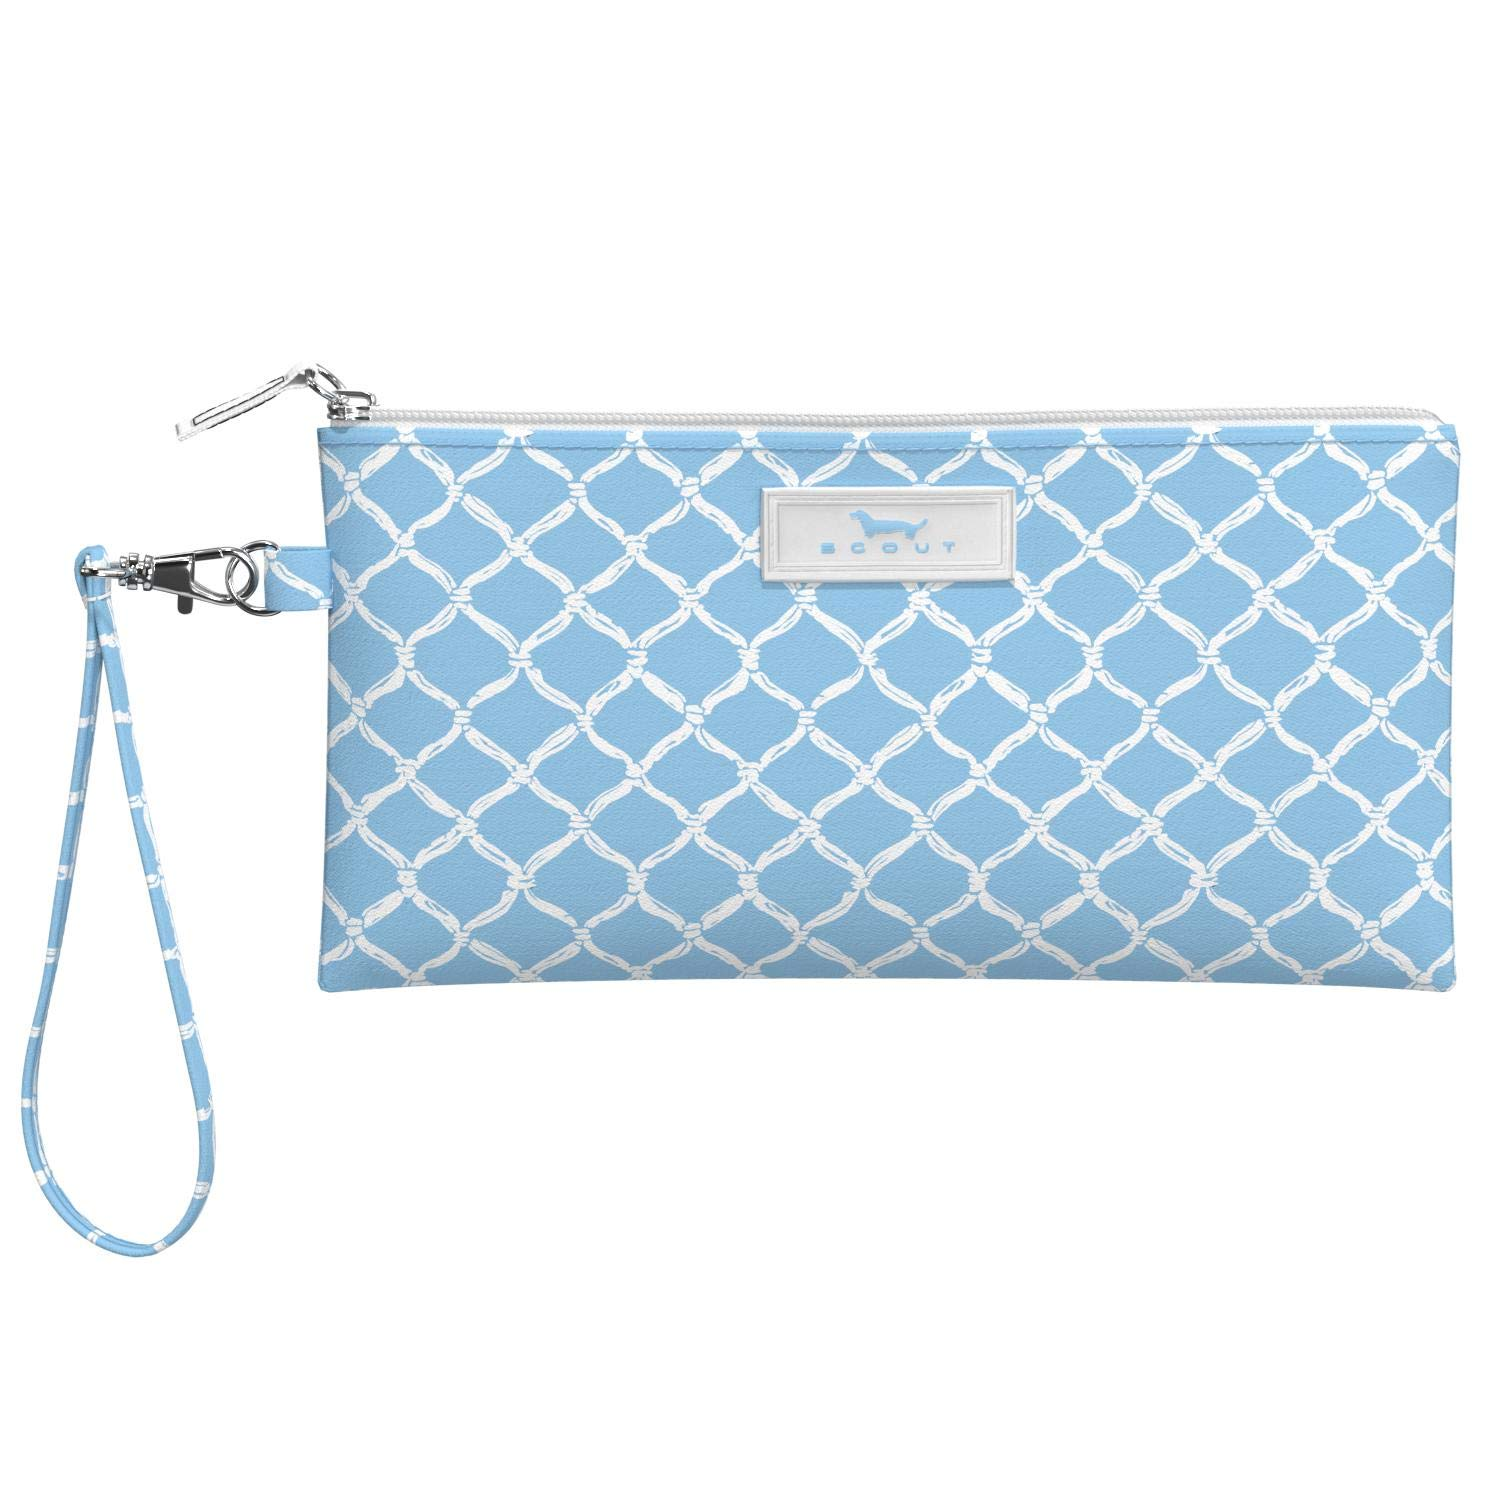 SCOUT Kate Wristlet, Lightweight Wristlet Wallet for Women, Small Clutch Wristlet with Strap (Multiple Patterns Available) by SCOUT